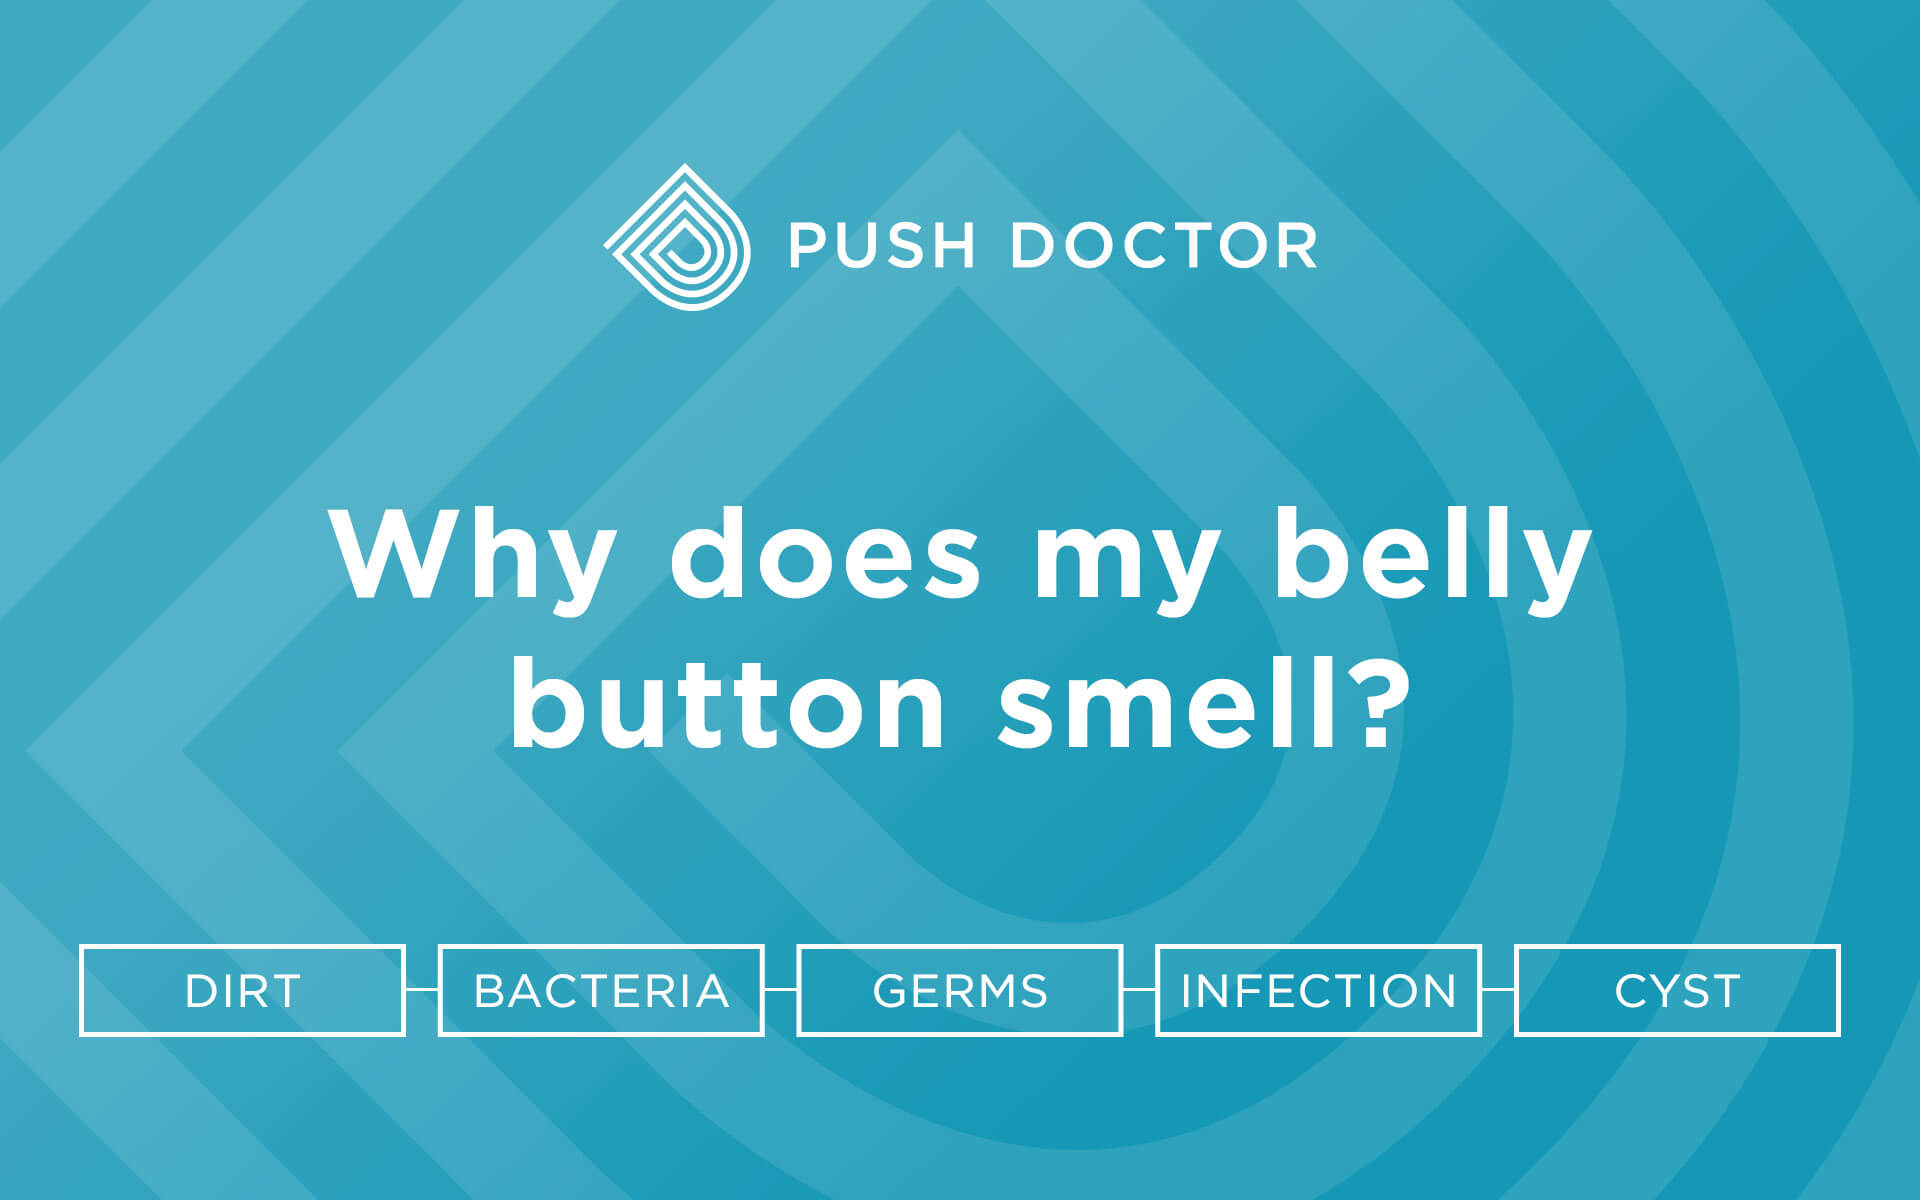 Why does my belly button smell